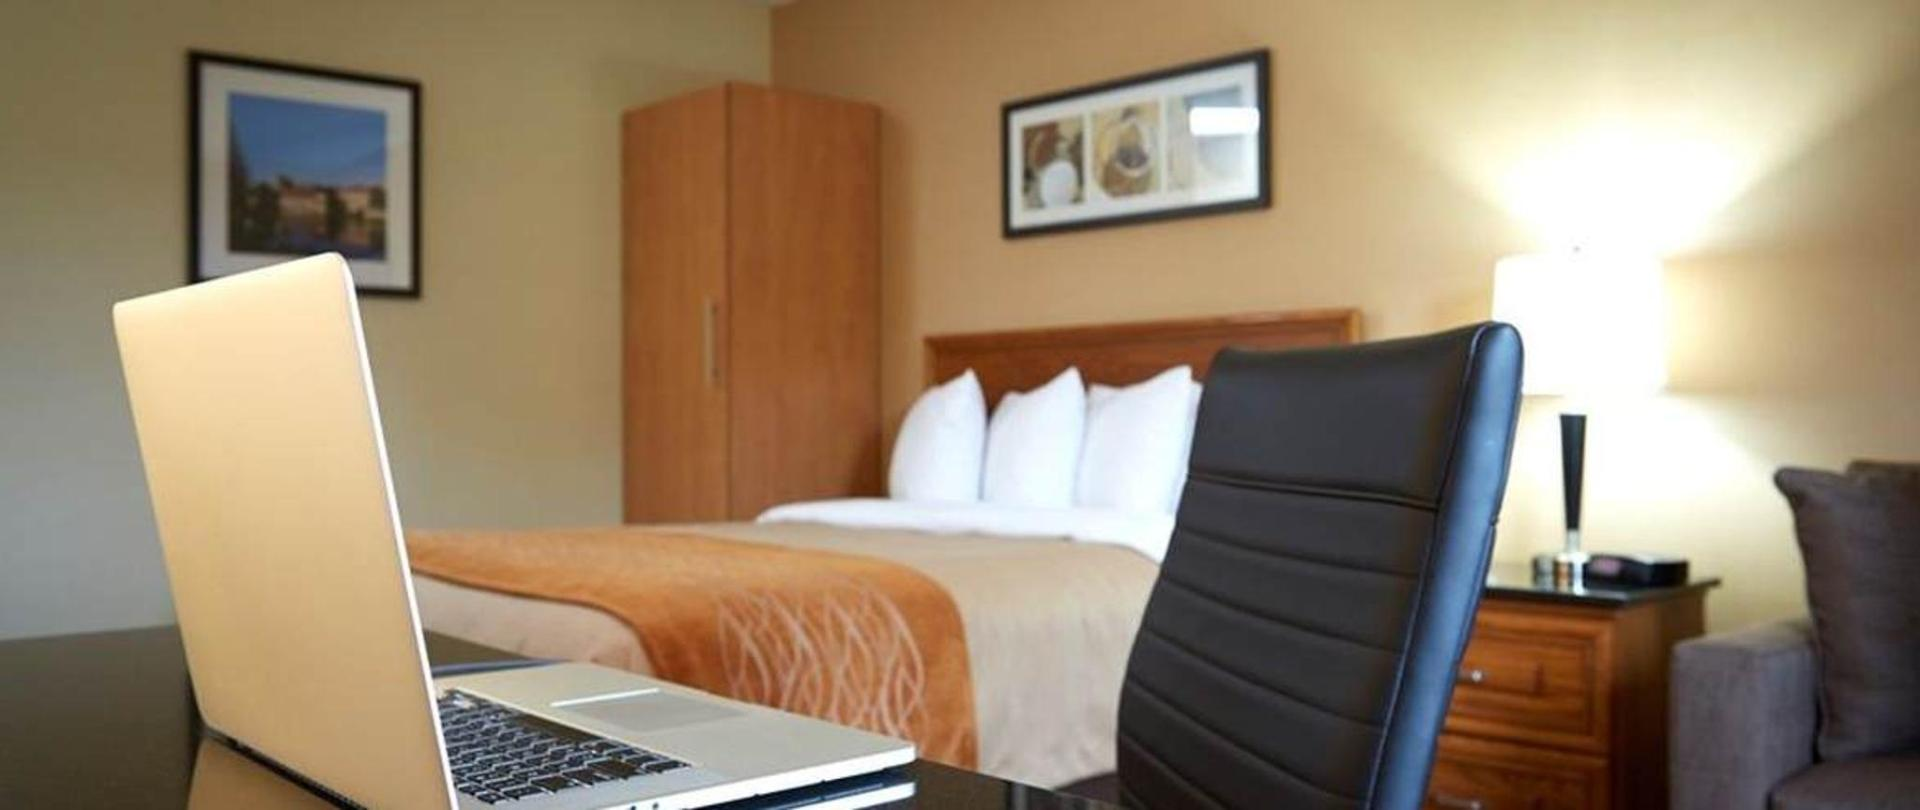 always-connected-with-free-wi-fi-in-all-guestrooms.jpg.1170x493_default.jpg